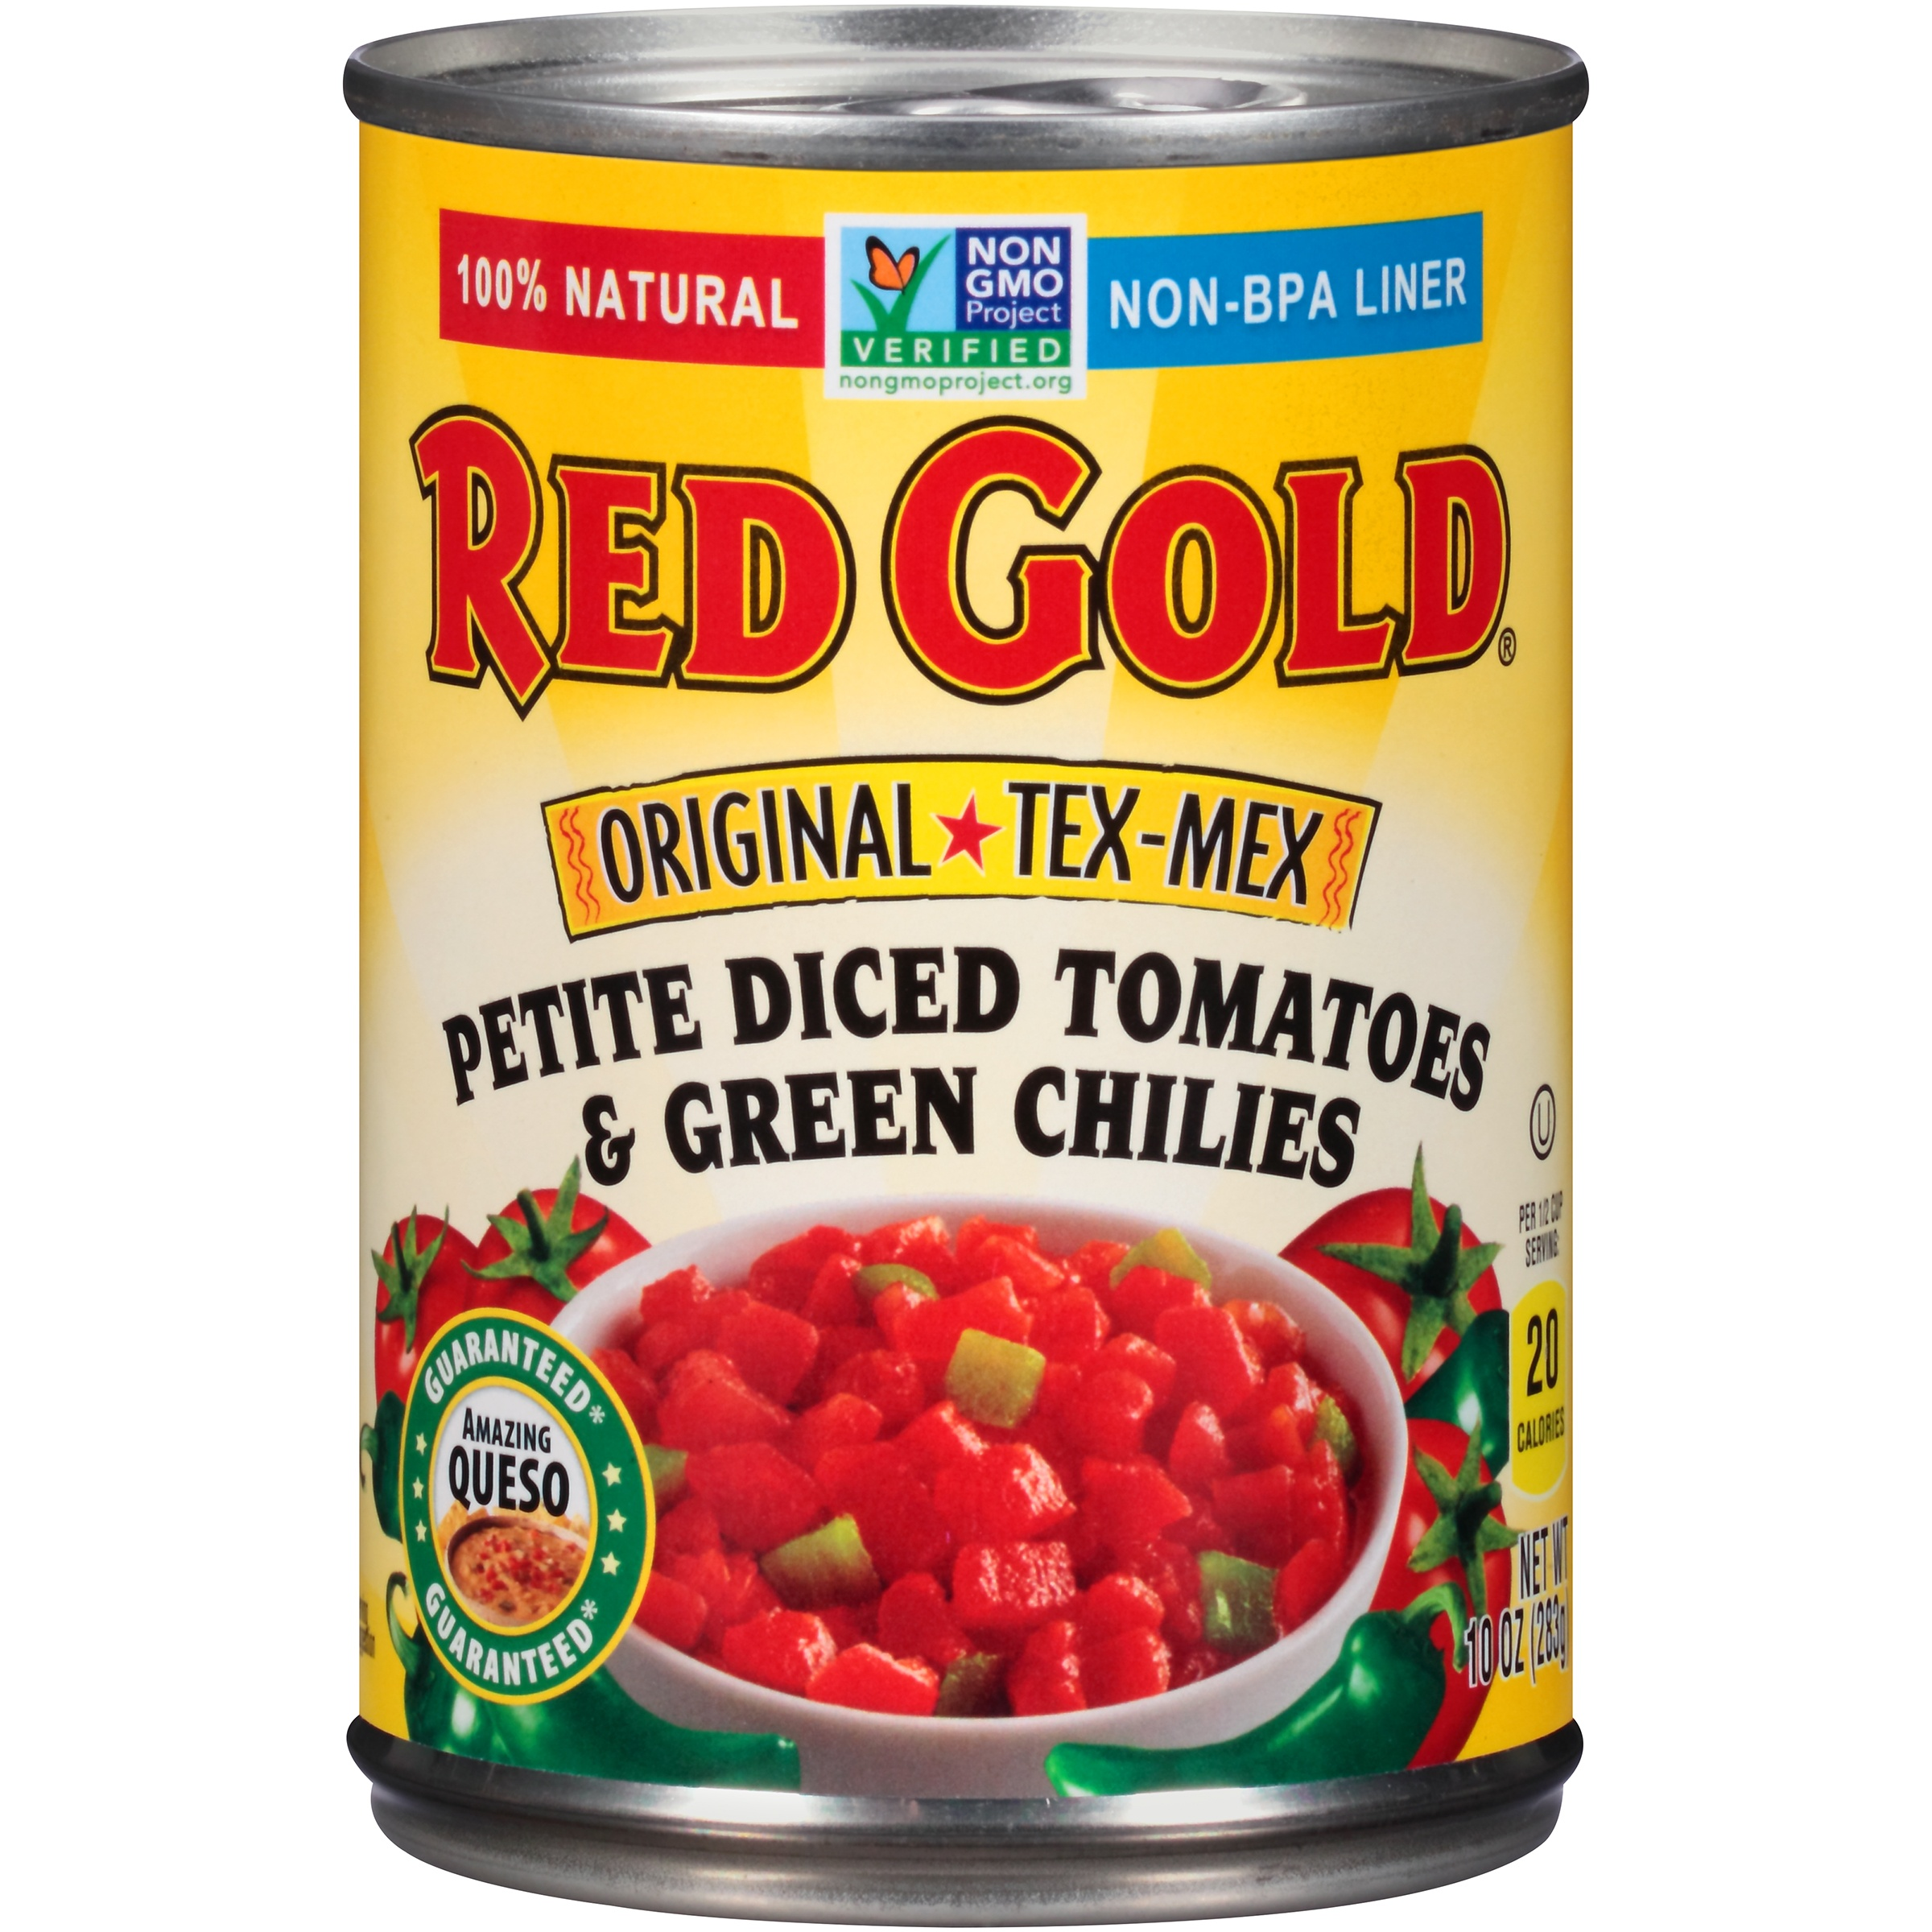 Red Gold Original Tex-Mex Petite Diced Tomatoes & Green Chilies, 10 oz